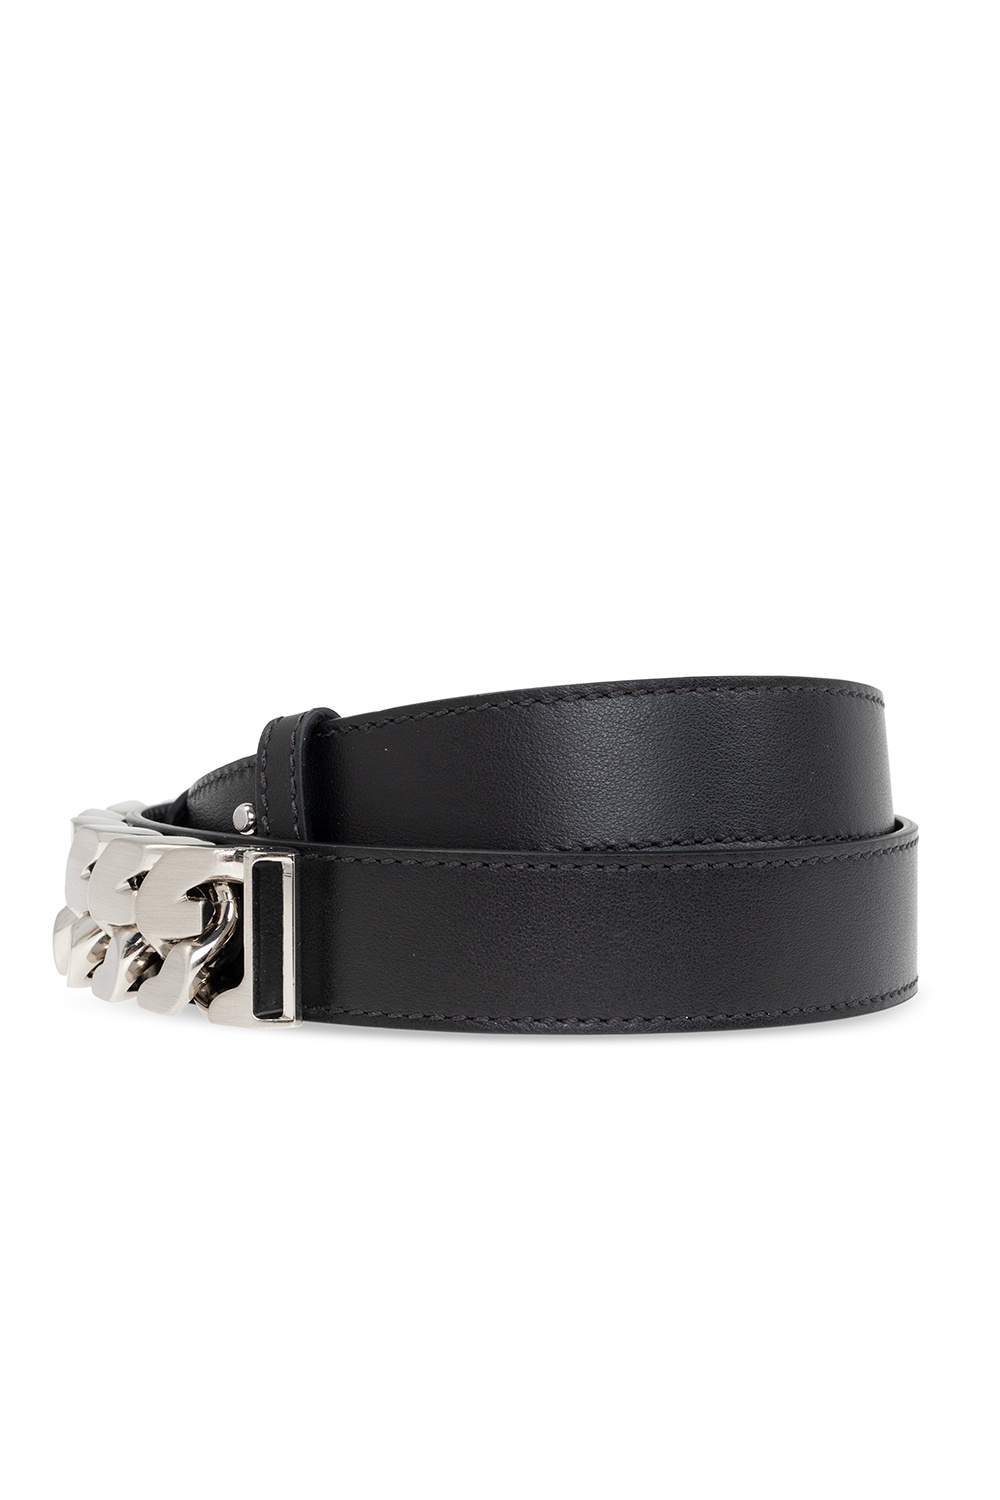 Givenchy Belt with chain